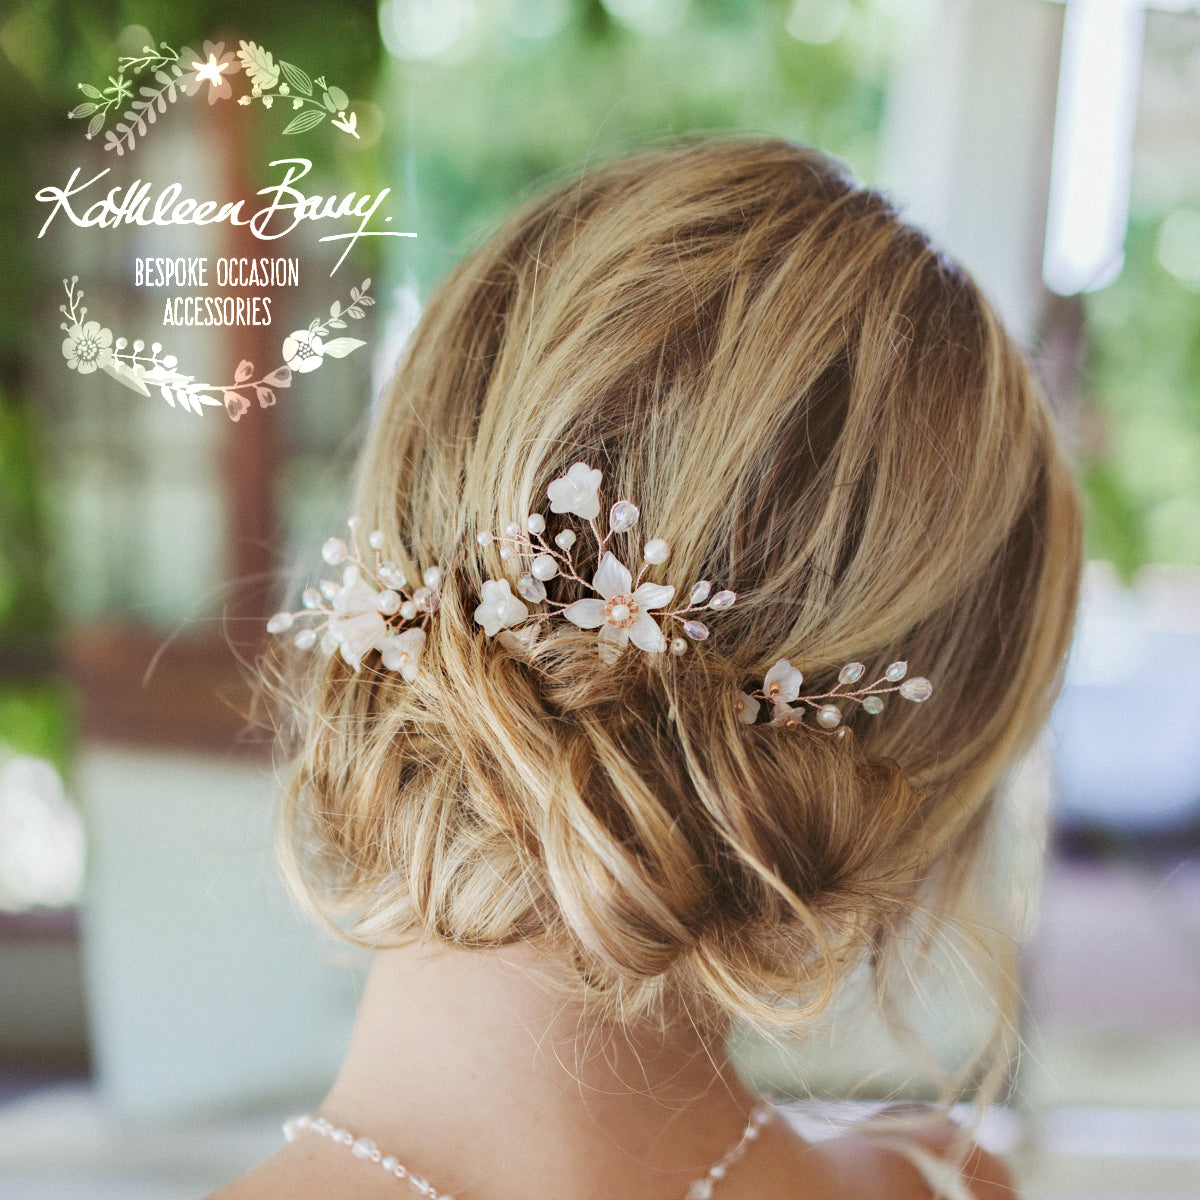 styles of hair bridal flower hair pins mix amp match gold gold or 2550 | Monique wedding hair pins rose gold kathleen barry 1200x1200